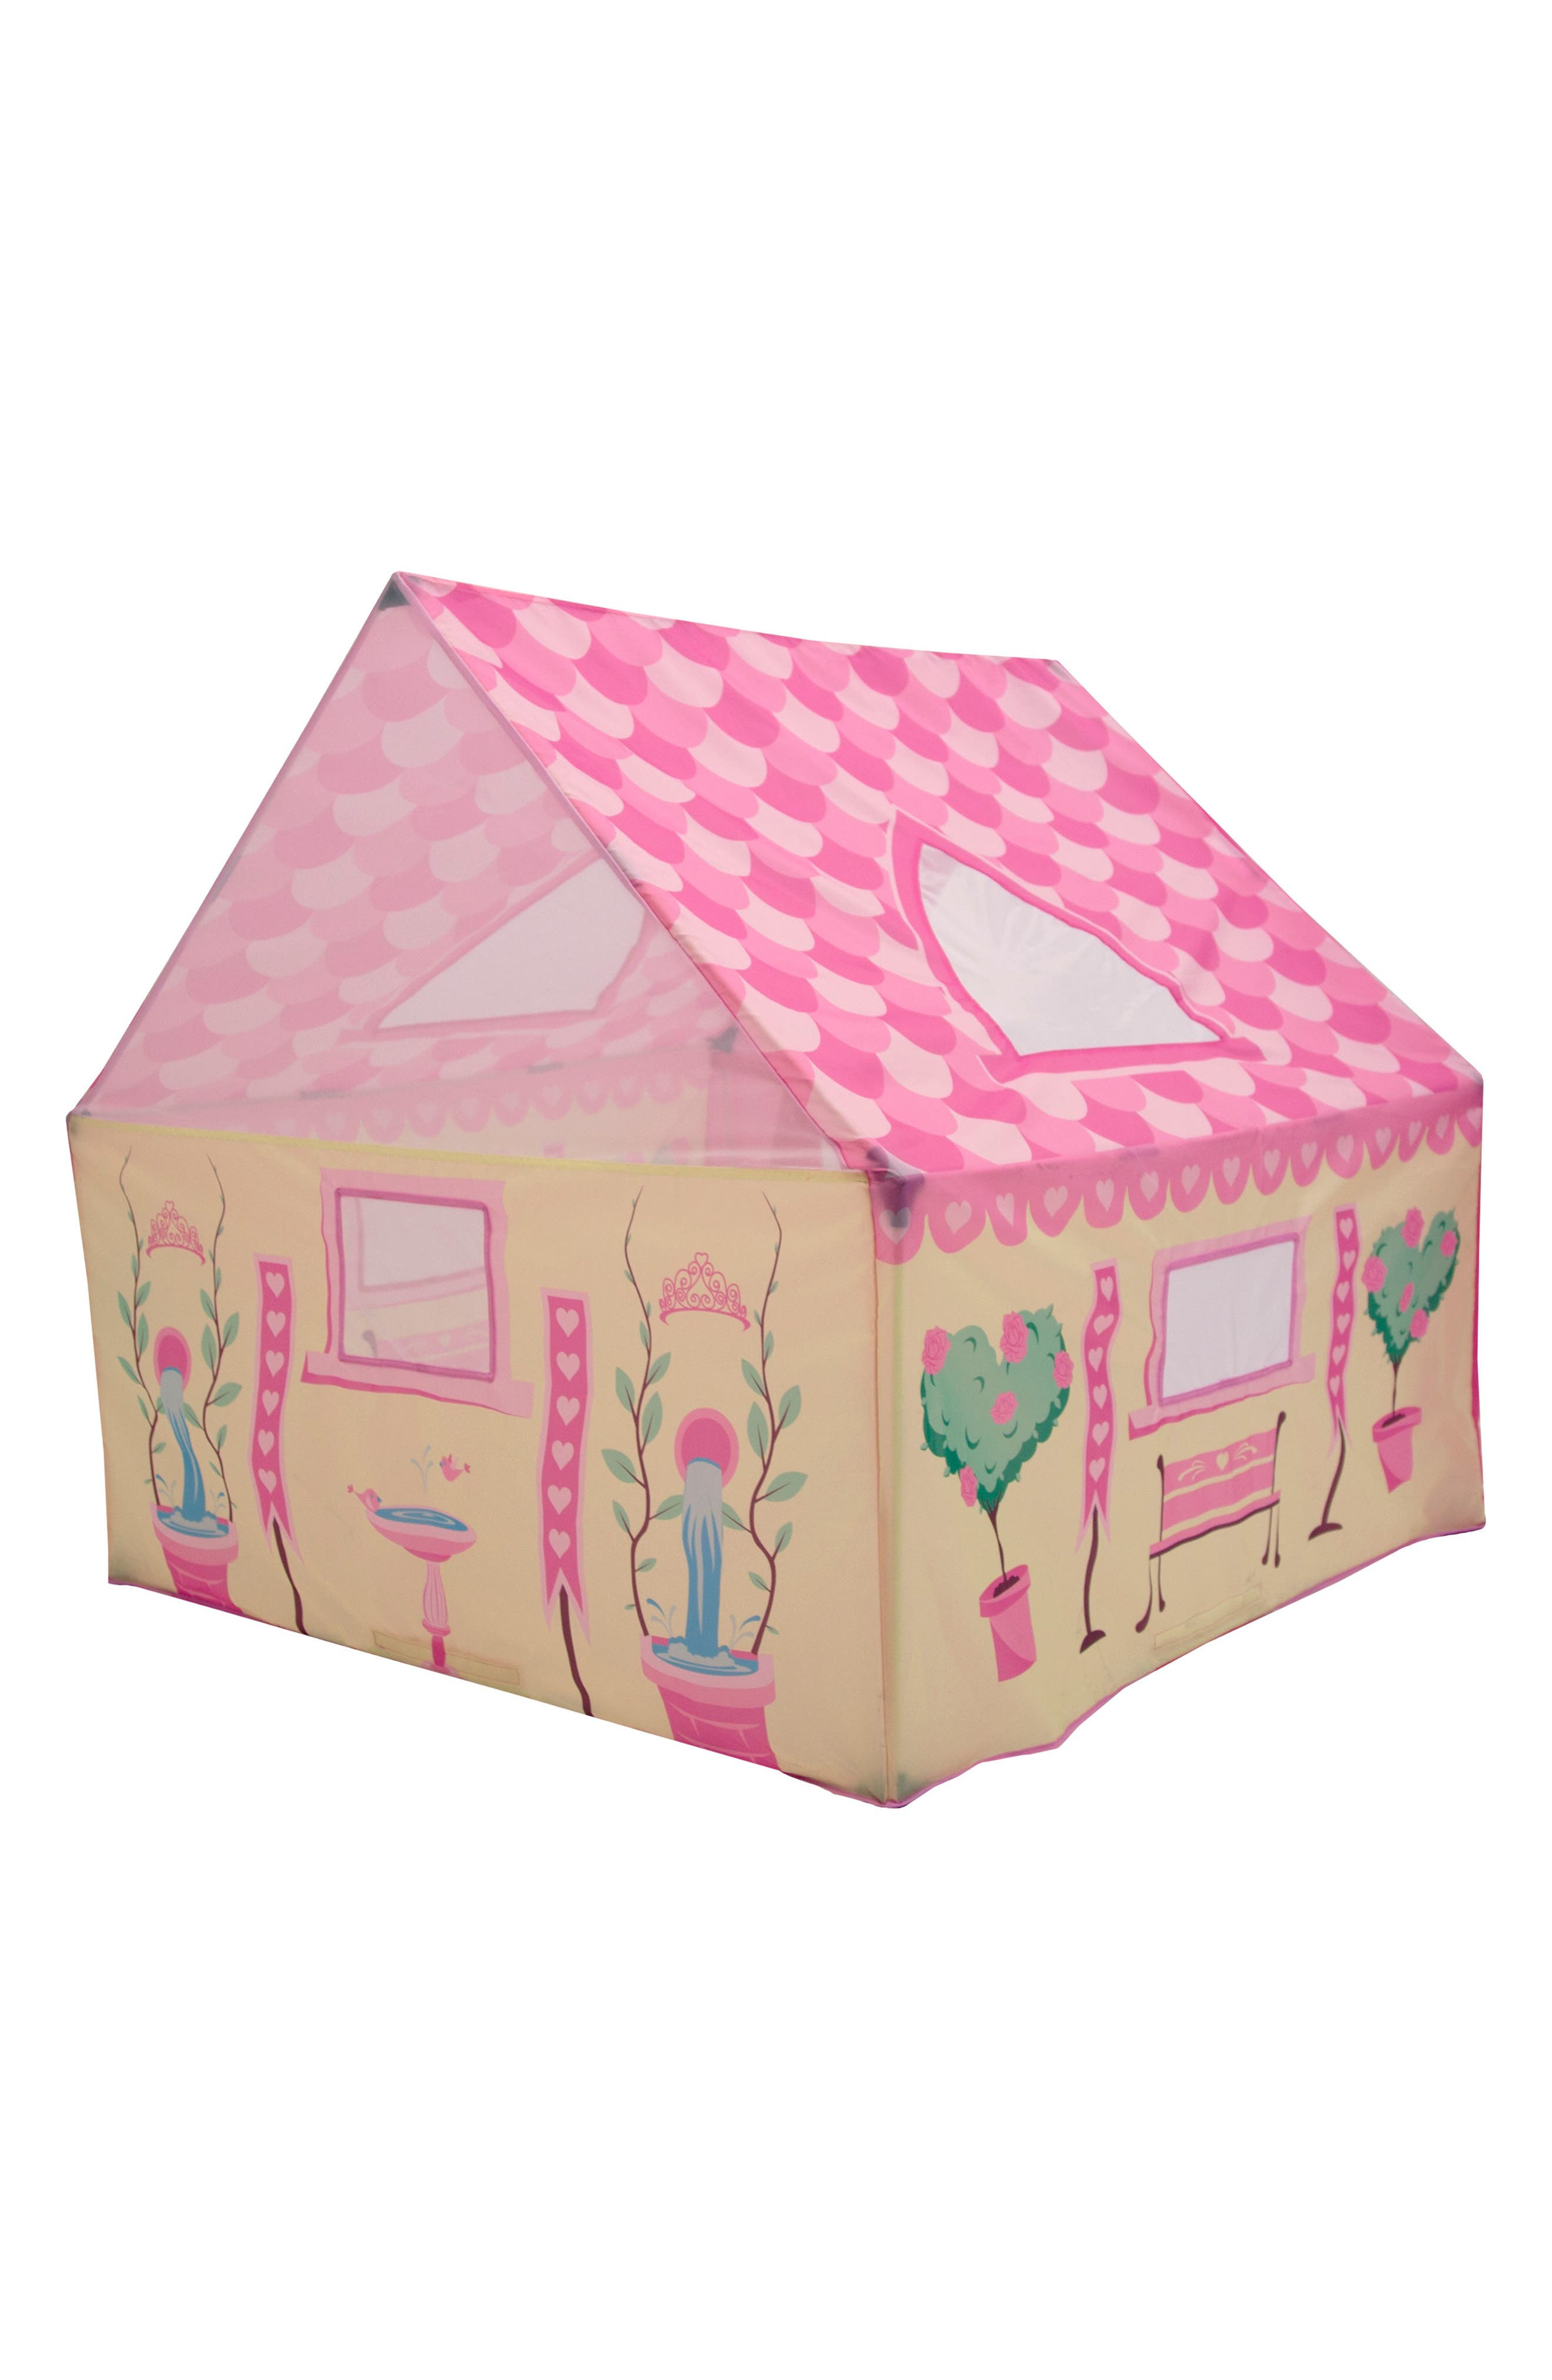 Main Image - Pacific Play Tents Tea Party Garden Playhouse Tent